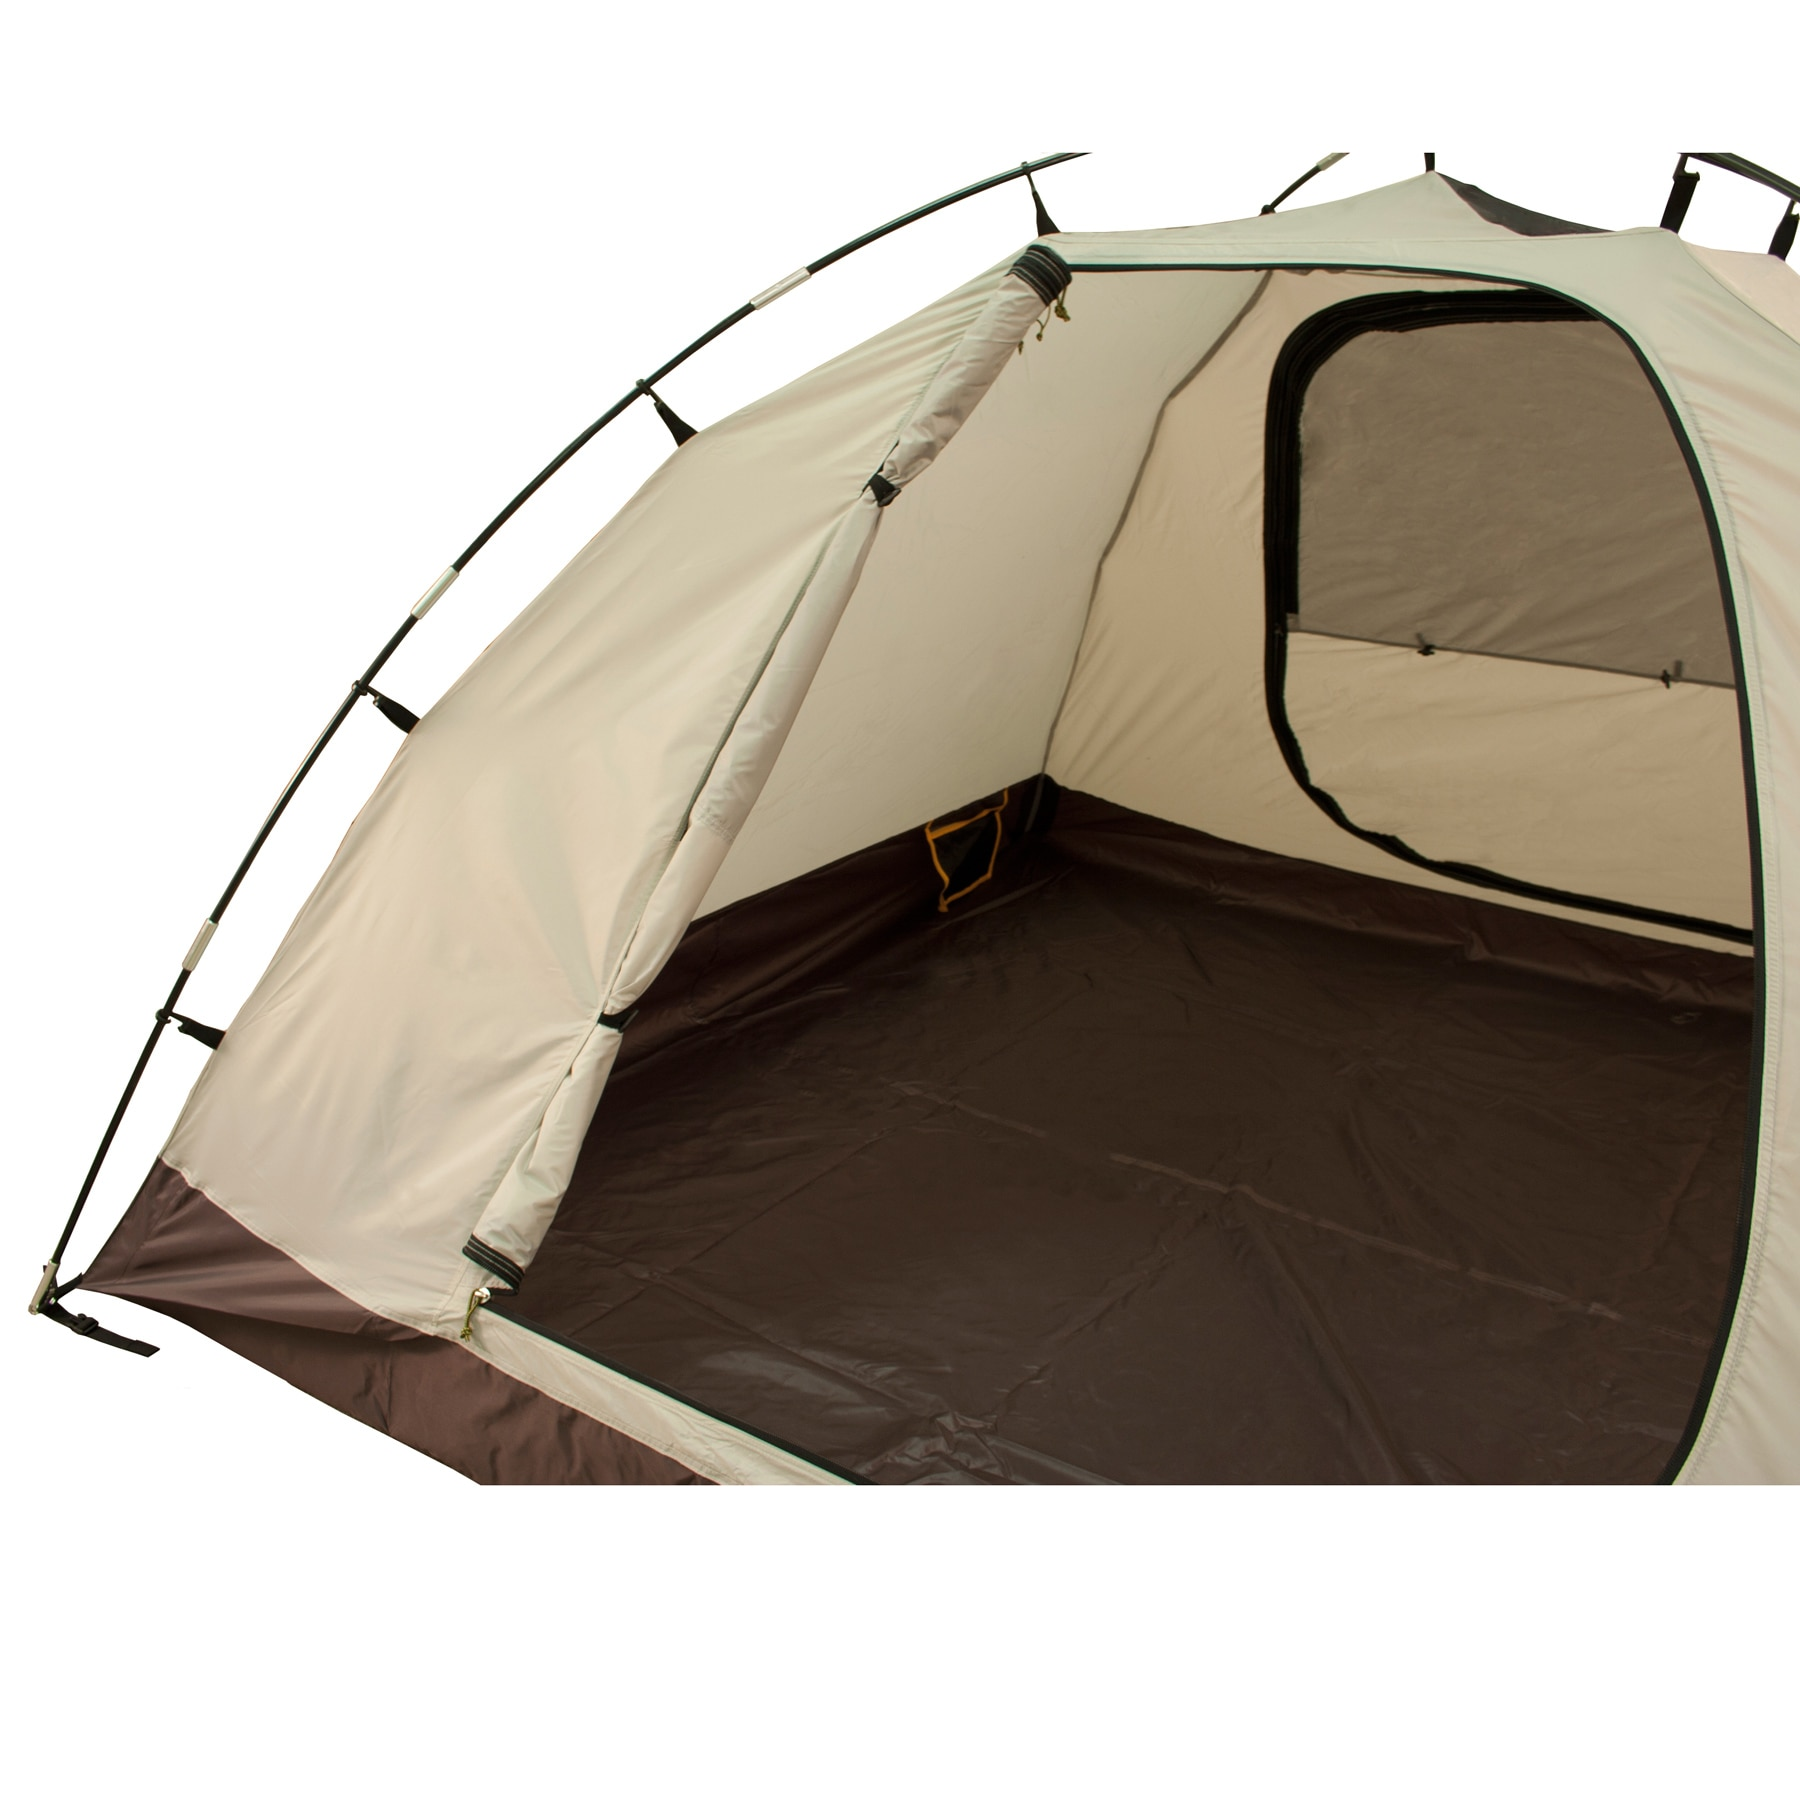 Browning C&ing Greystone 4-person Tent - Free Shipping Today - Overstock.com - 12740328  sc 1 st  Overstock.com & Browning Camping Greystone 4-person Tent - Free Shipping Today ...